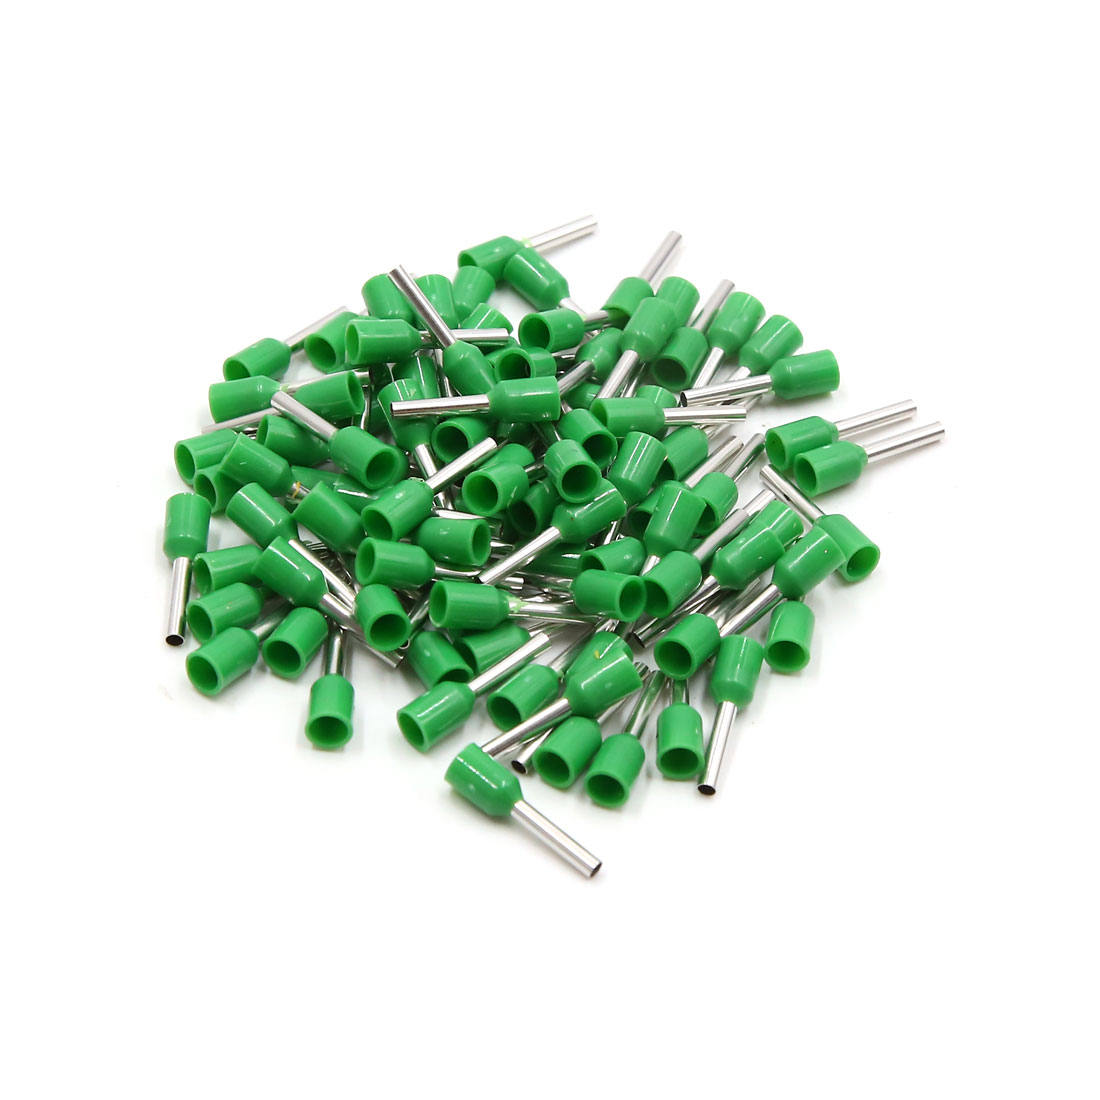 100pcs Green Insulated Copper AWG 16 Wire Crimp Connector Cord Pin End Terminal